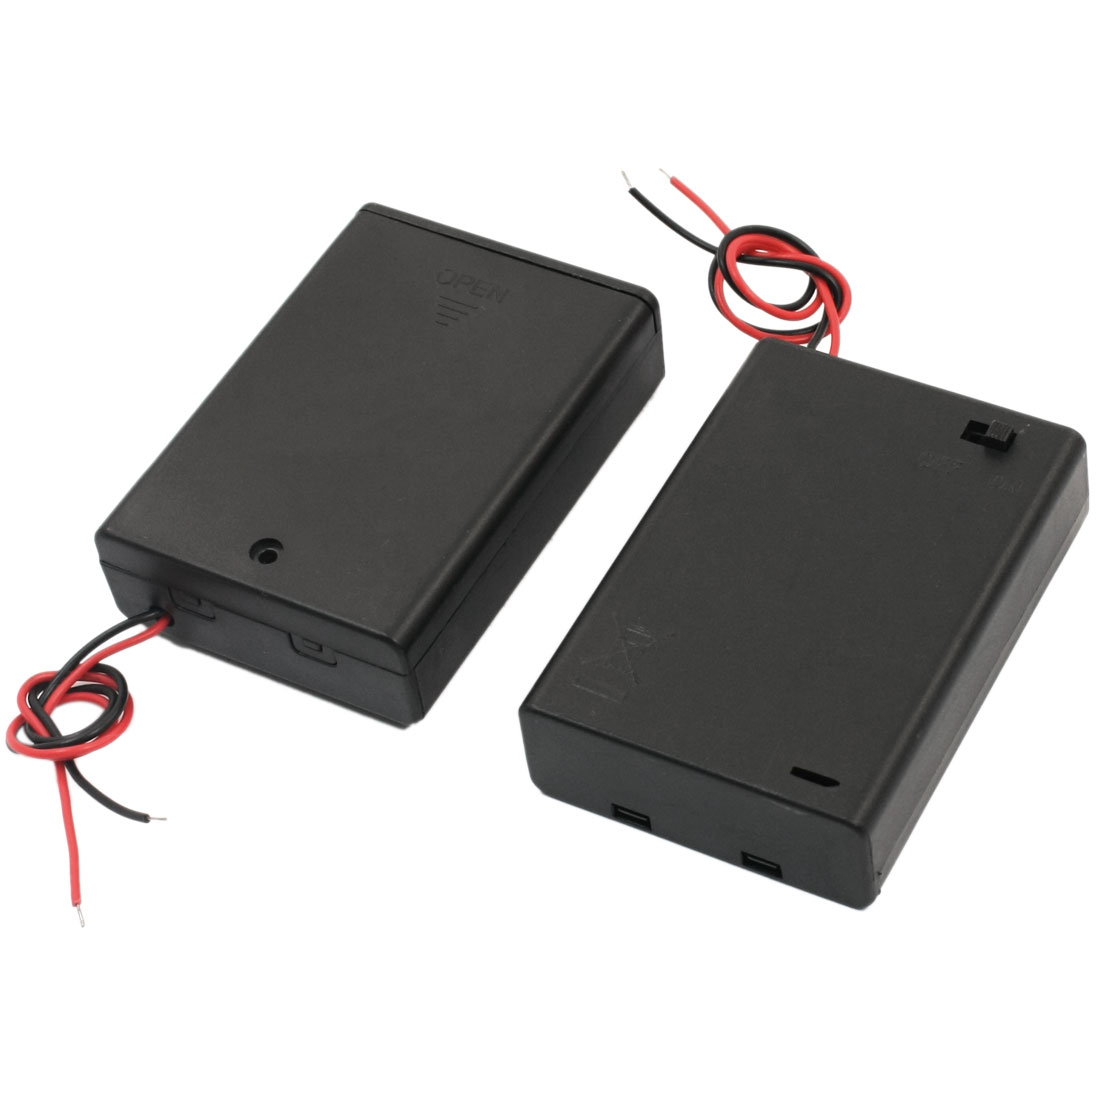 2Pcs Dual Wired Leads Slide Cover Plastic Shell 3 x 1.5V AA Battery Holders Cases Containers Boxes w ON/OFF Switch